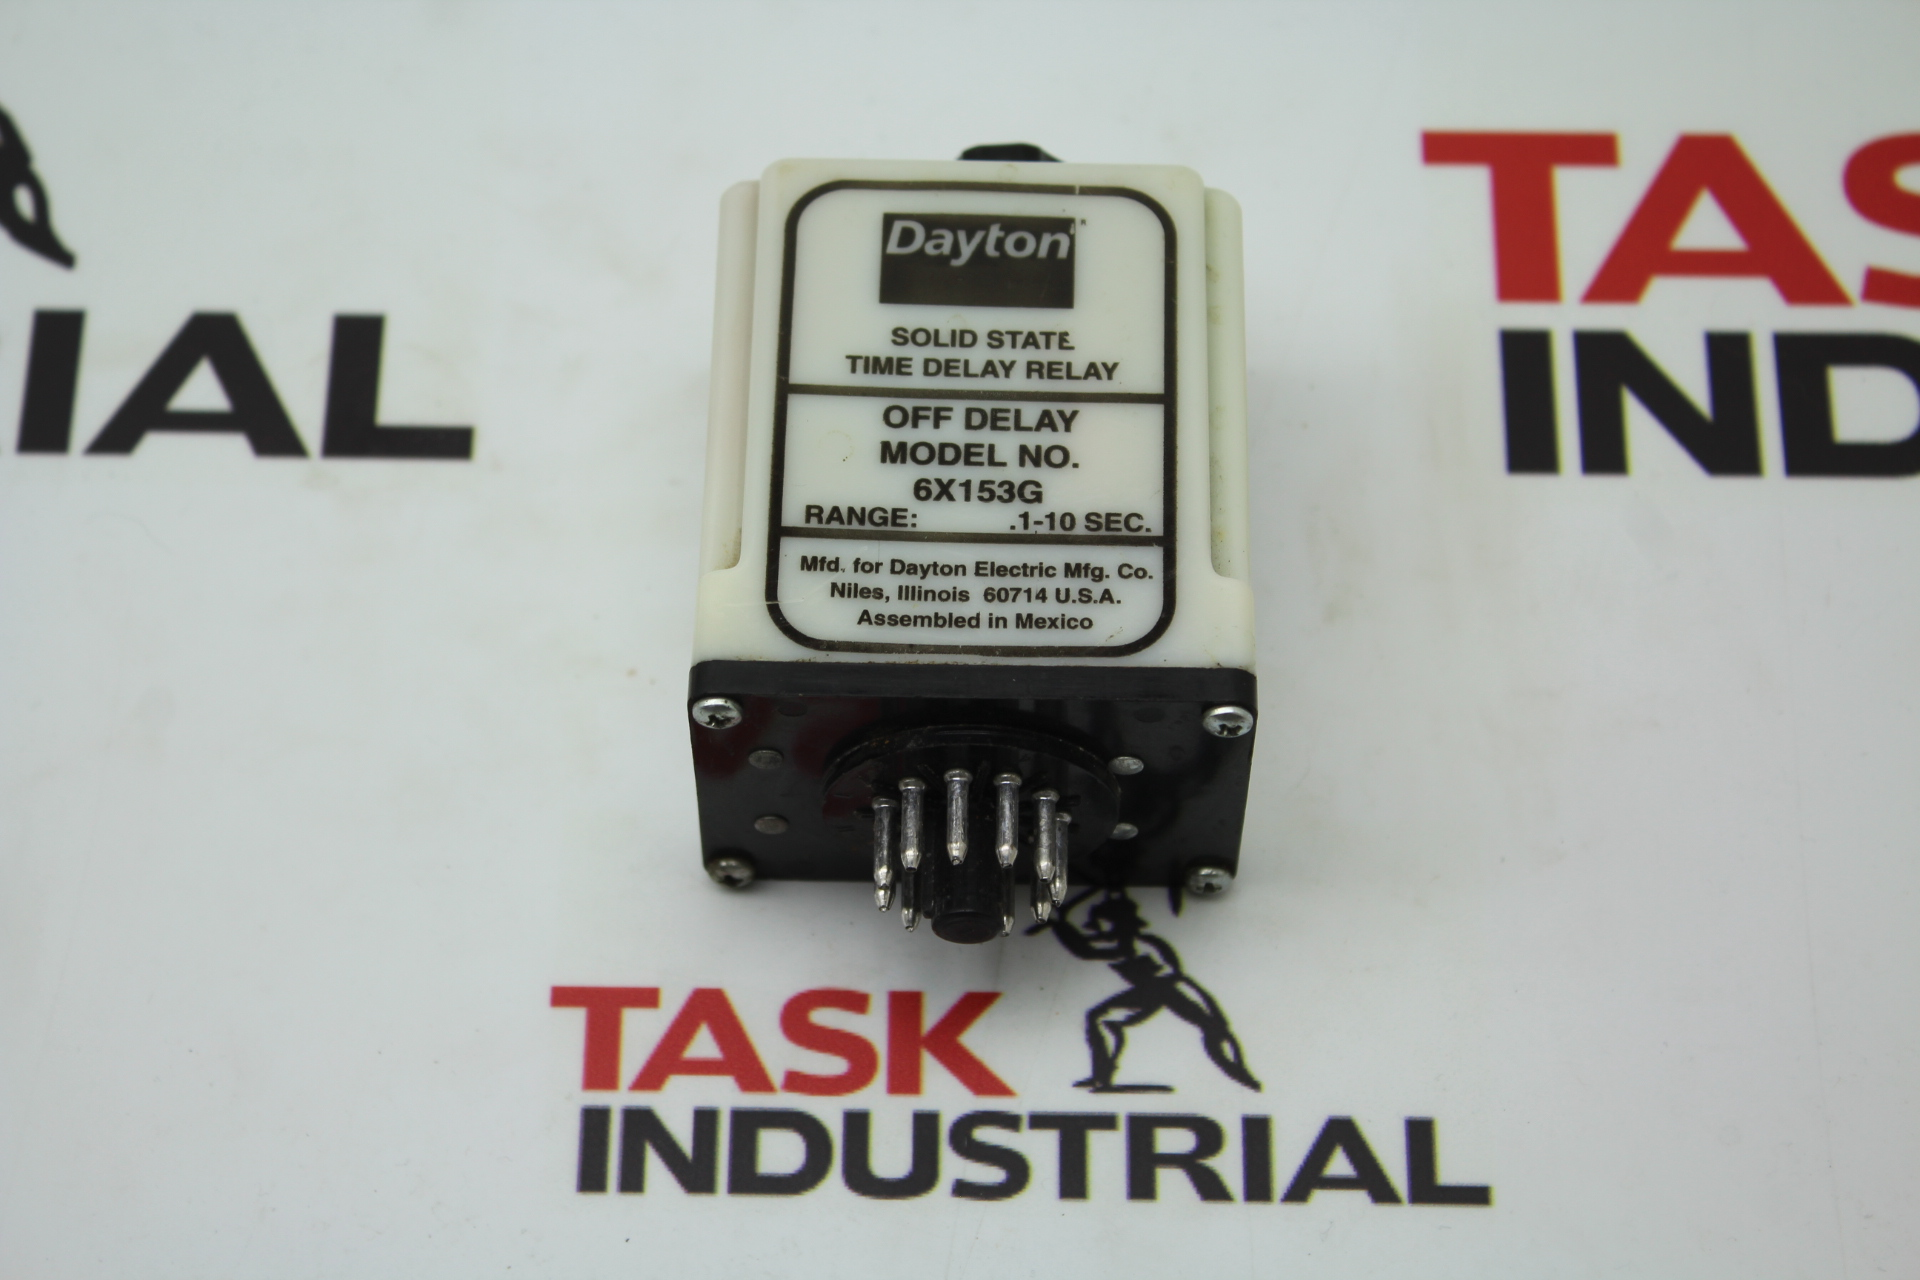 Dayton Solid State Time Delay Relay 6x153g On Off